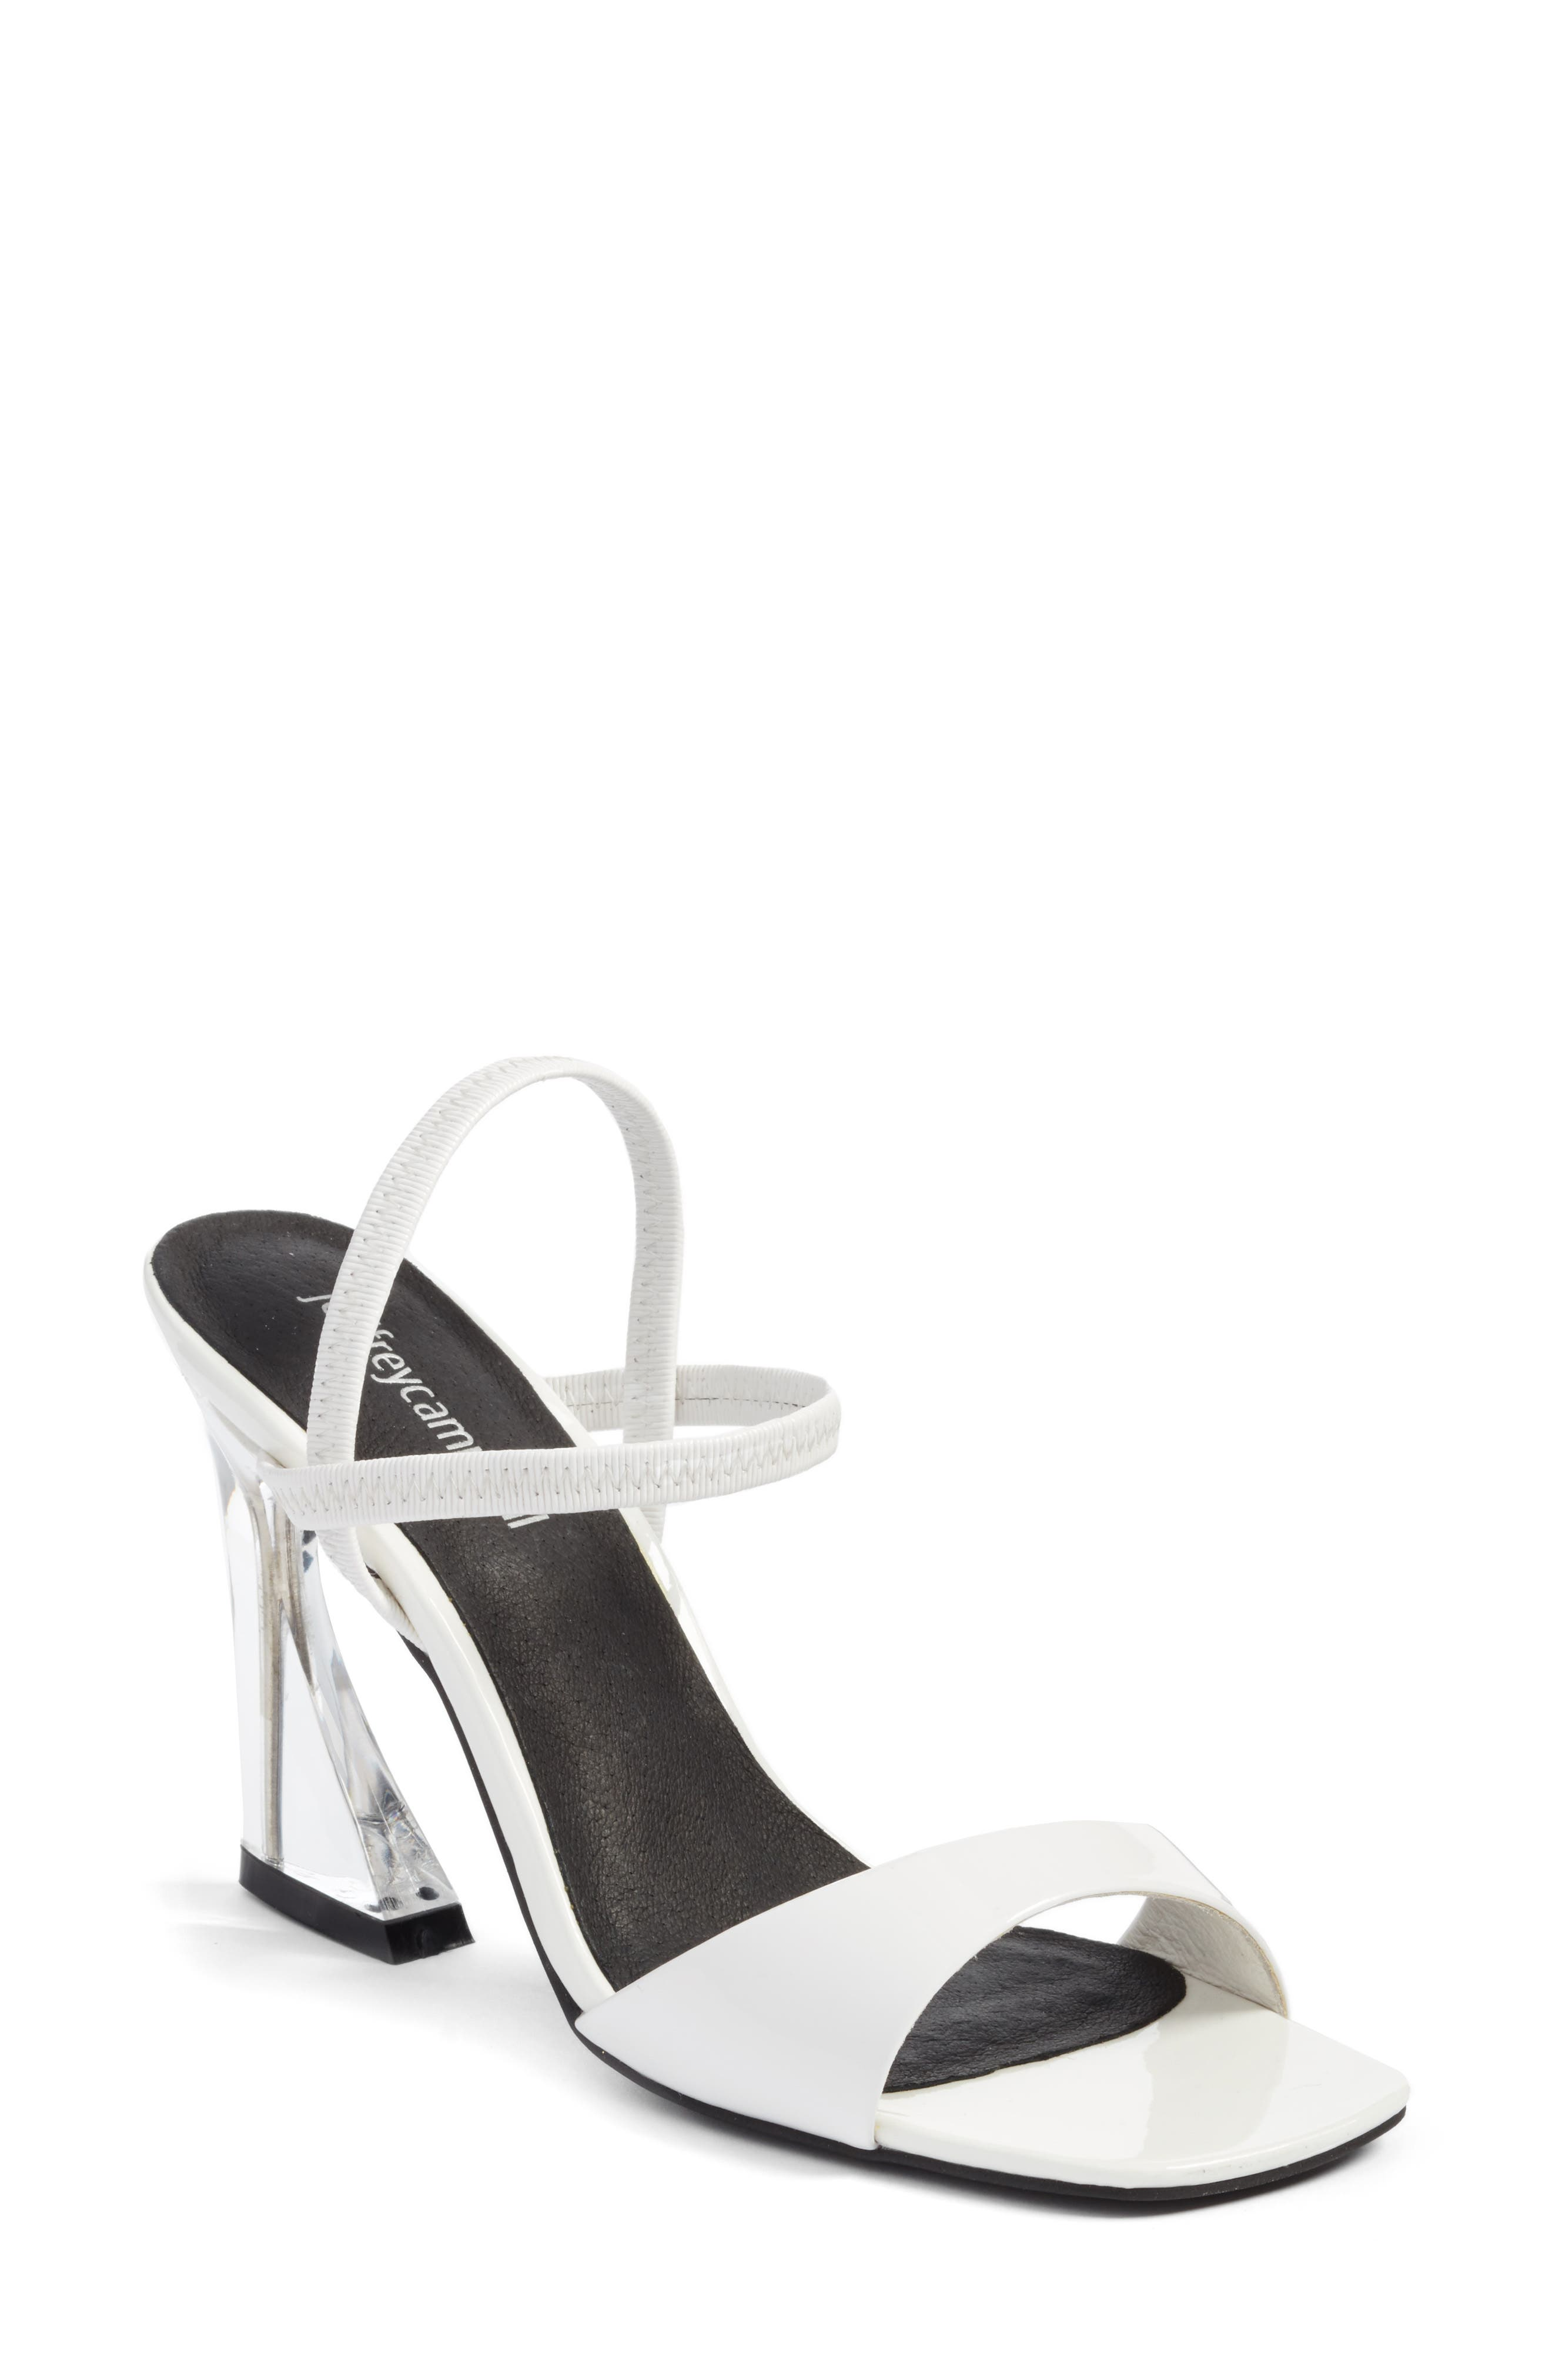 Carine Sandal,                         Main,                         color, White Patent/ Clear